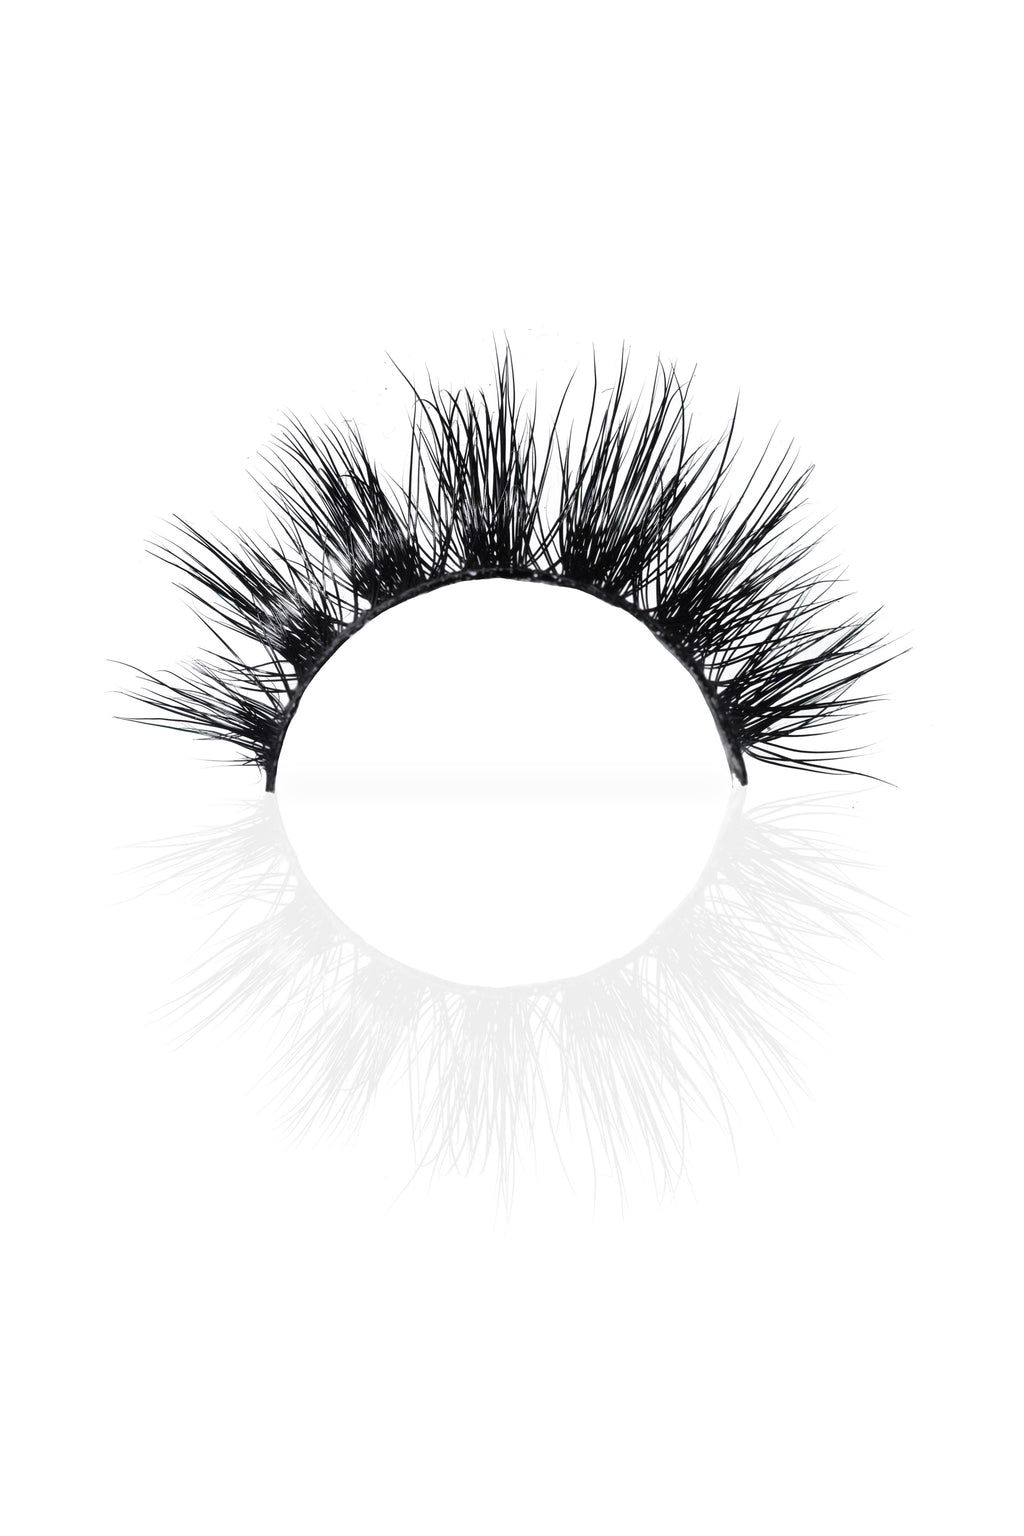 GB4 Luxury Mink Eyelashes